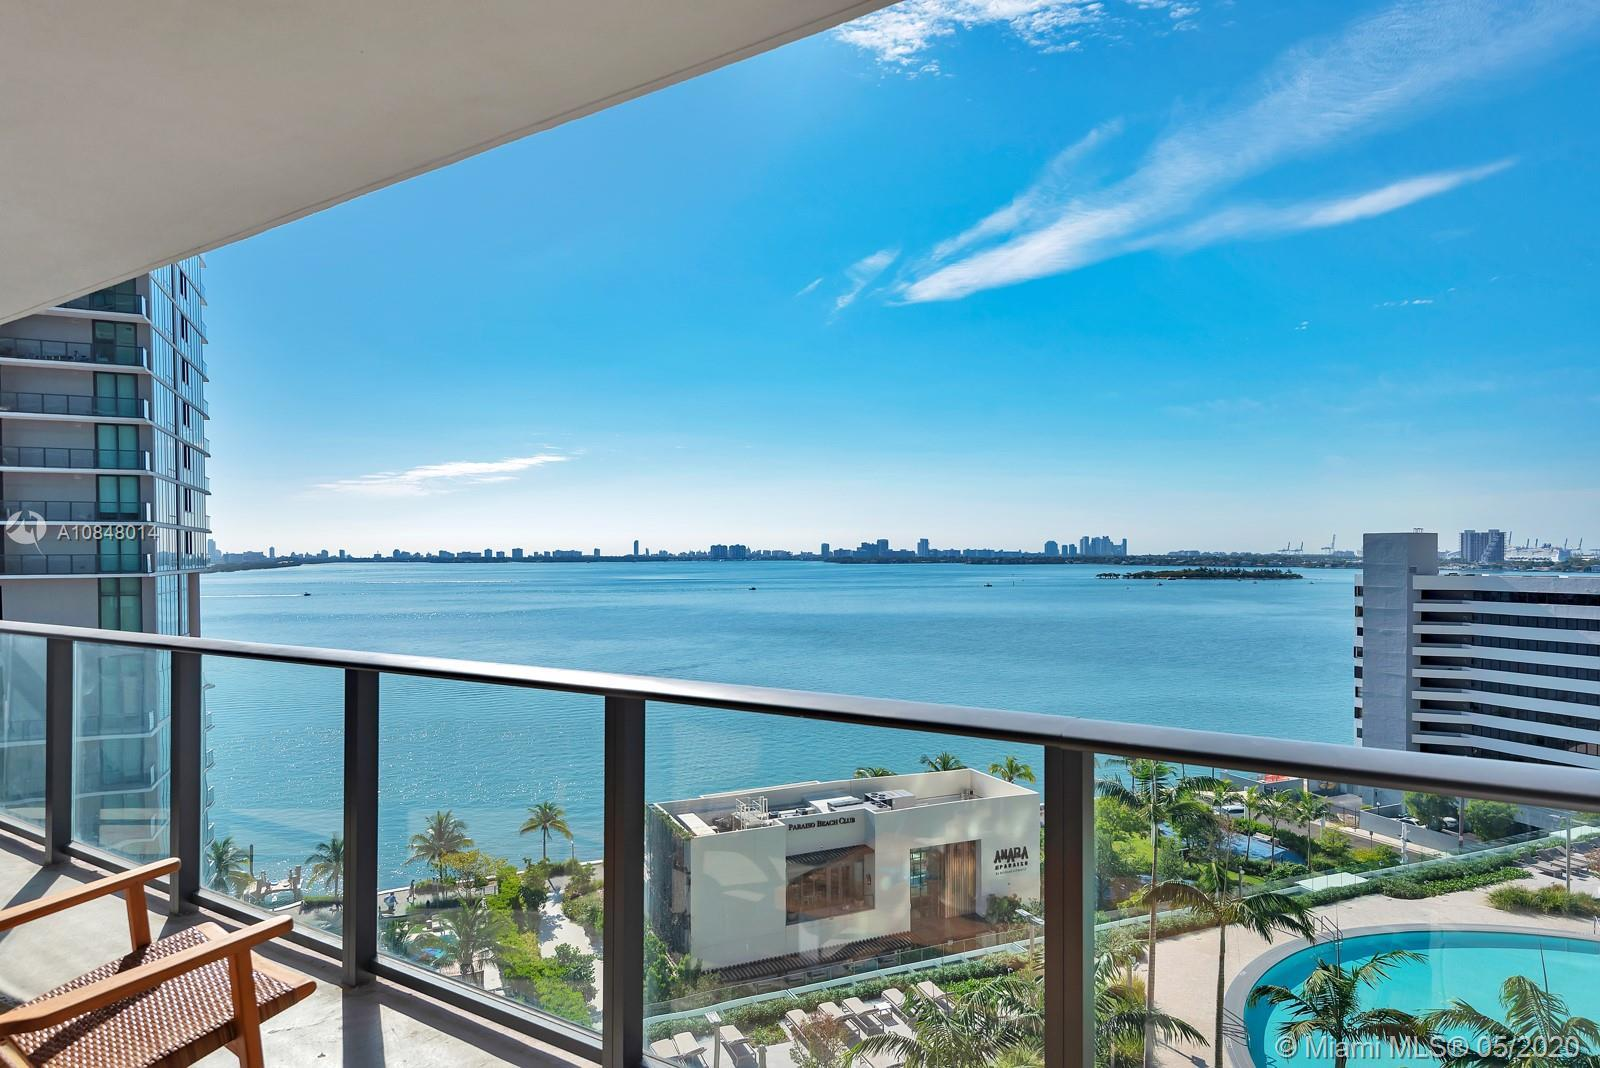 Unit 1004 is the best deal at Paraiso Bay. Completely upgraded and nicely decorated featuring 1272 S